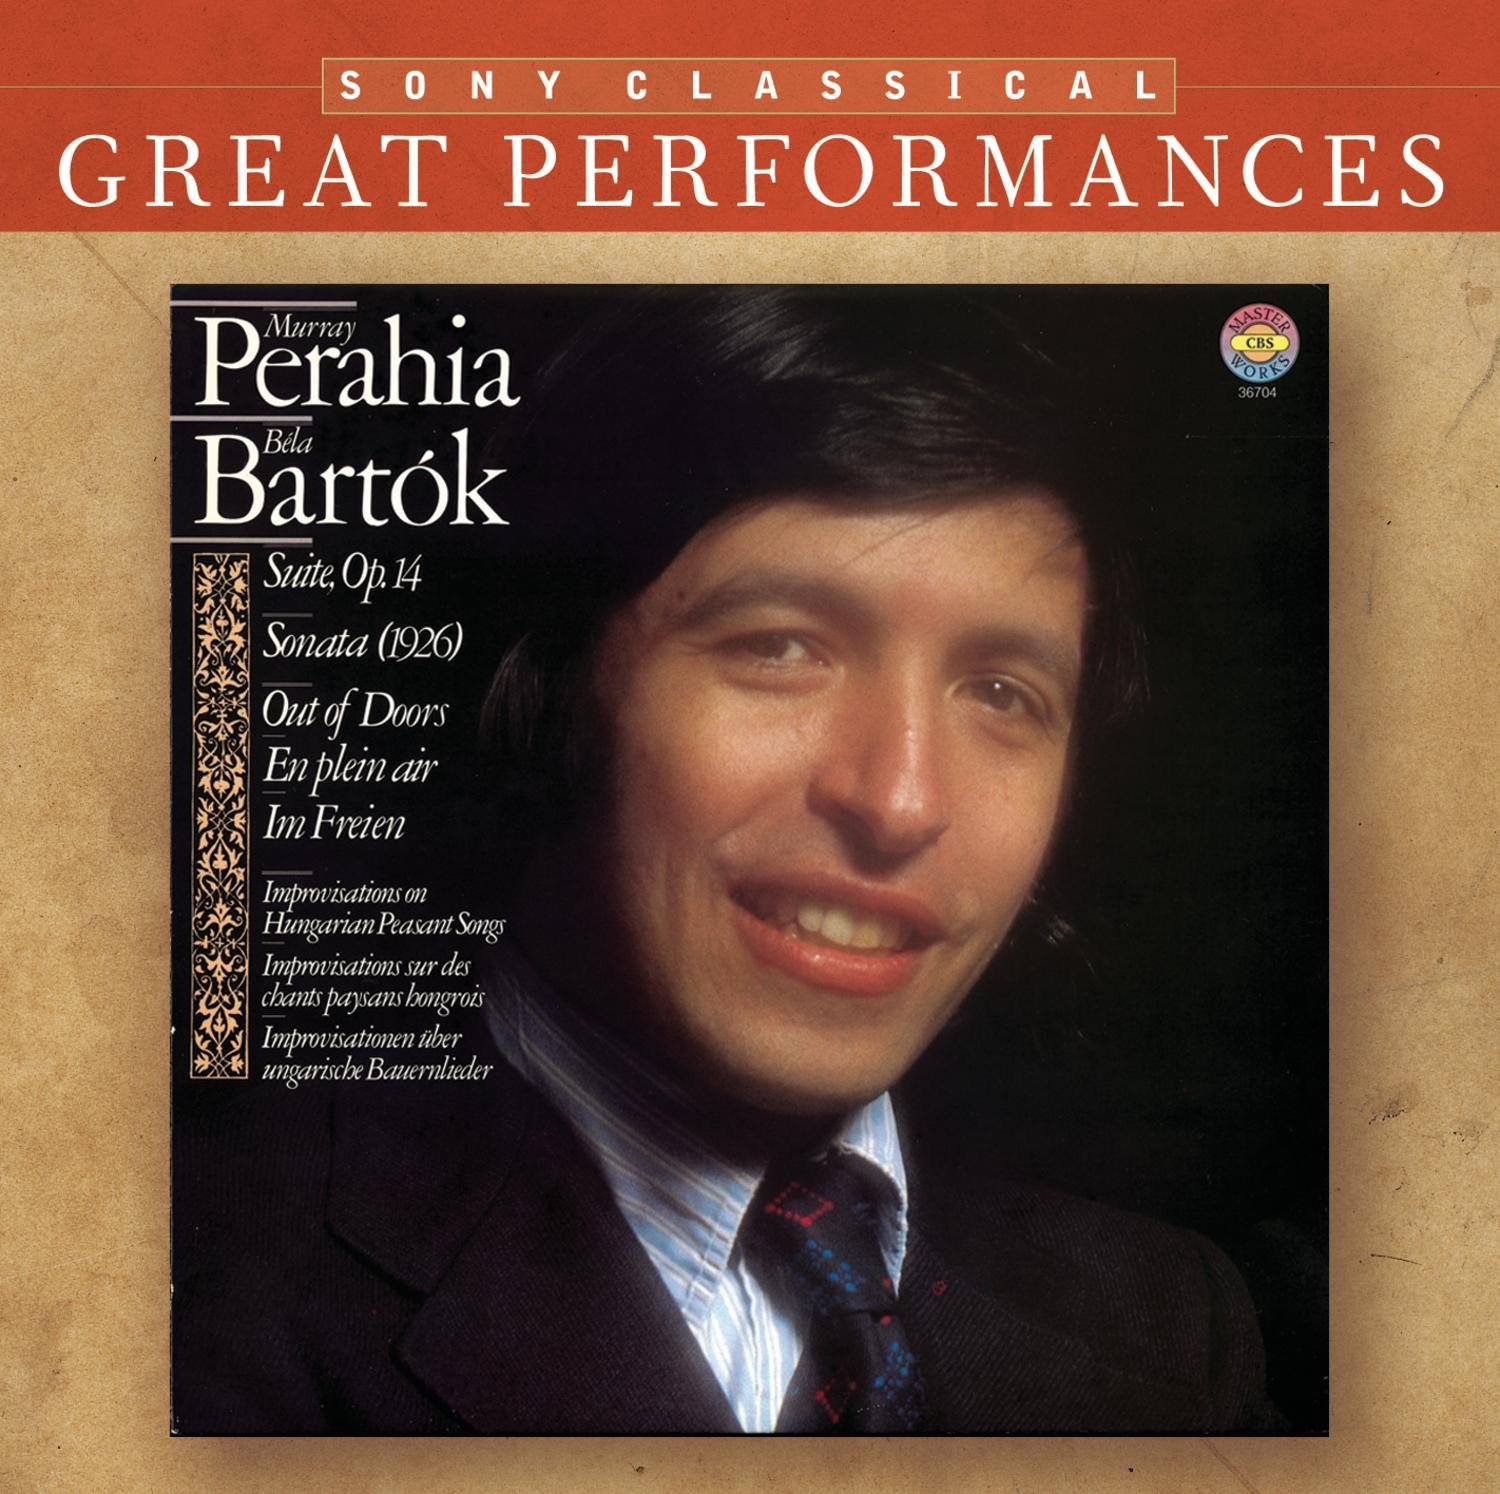 ... Evelyn Glennie David Corkhill - Murray Perahia Performs Béla Bartók (Piano Sonata; Improvisations on Hungarian Peasant Songs; Suite; Out of Doors; ...